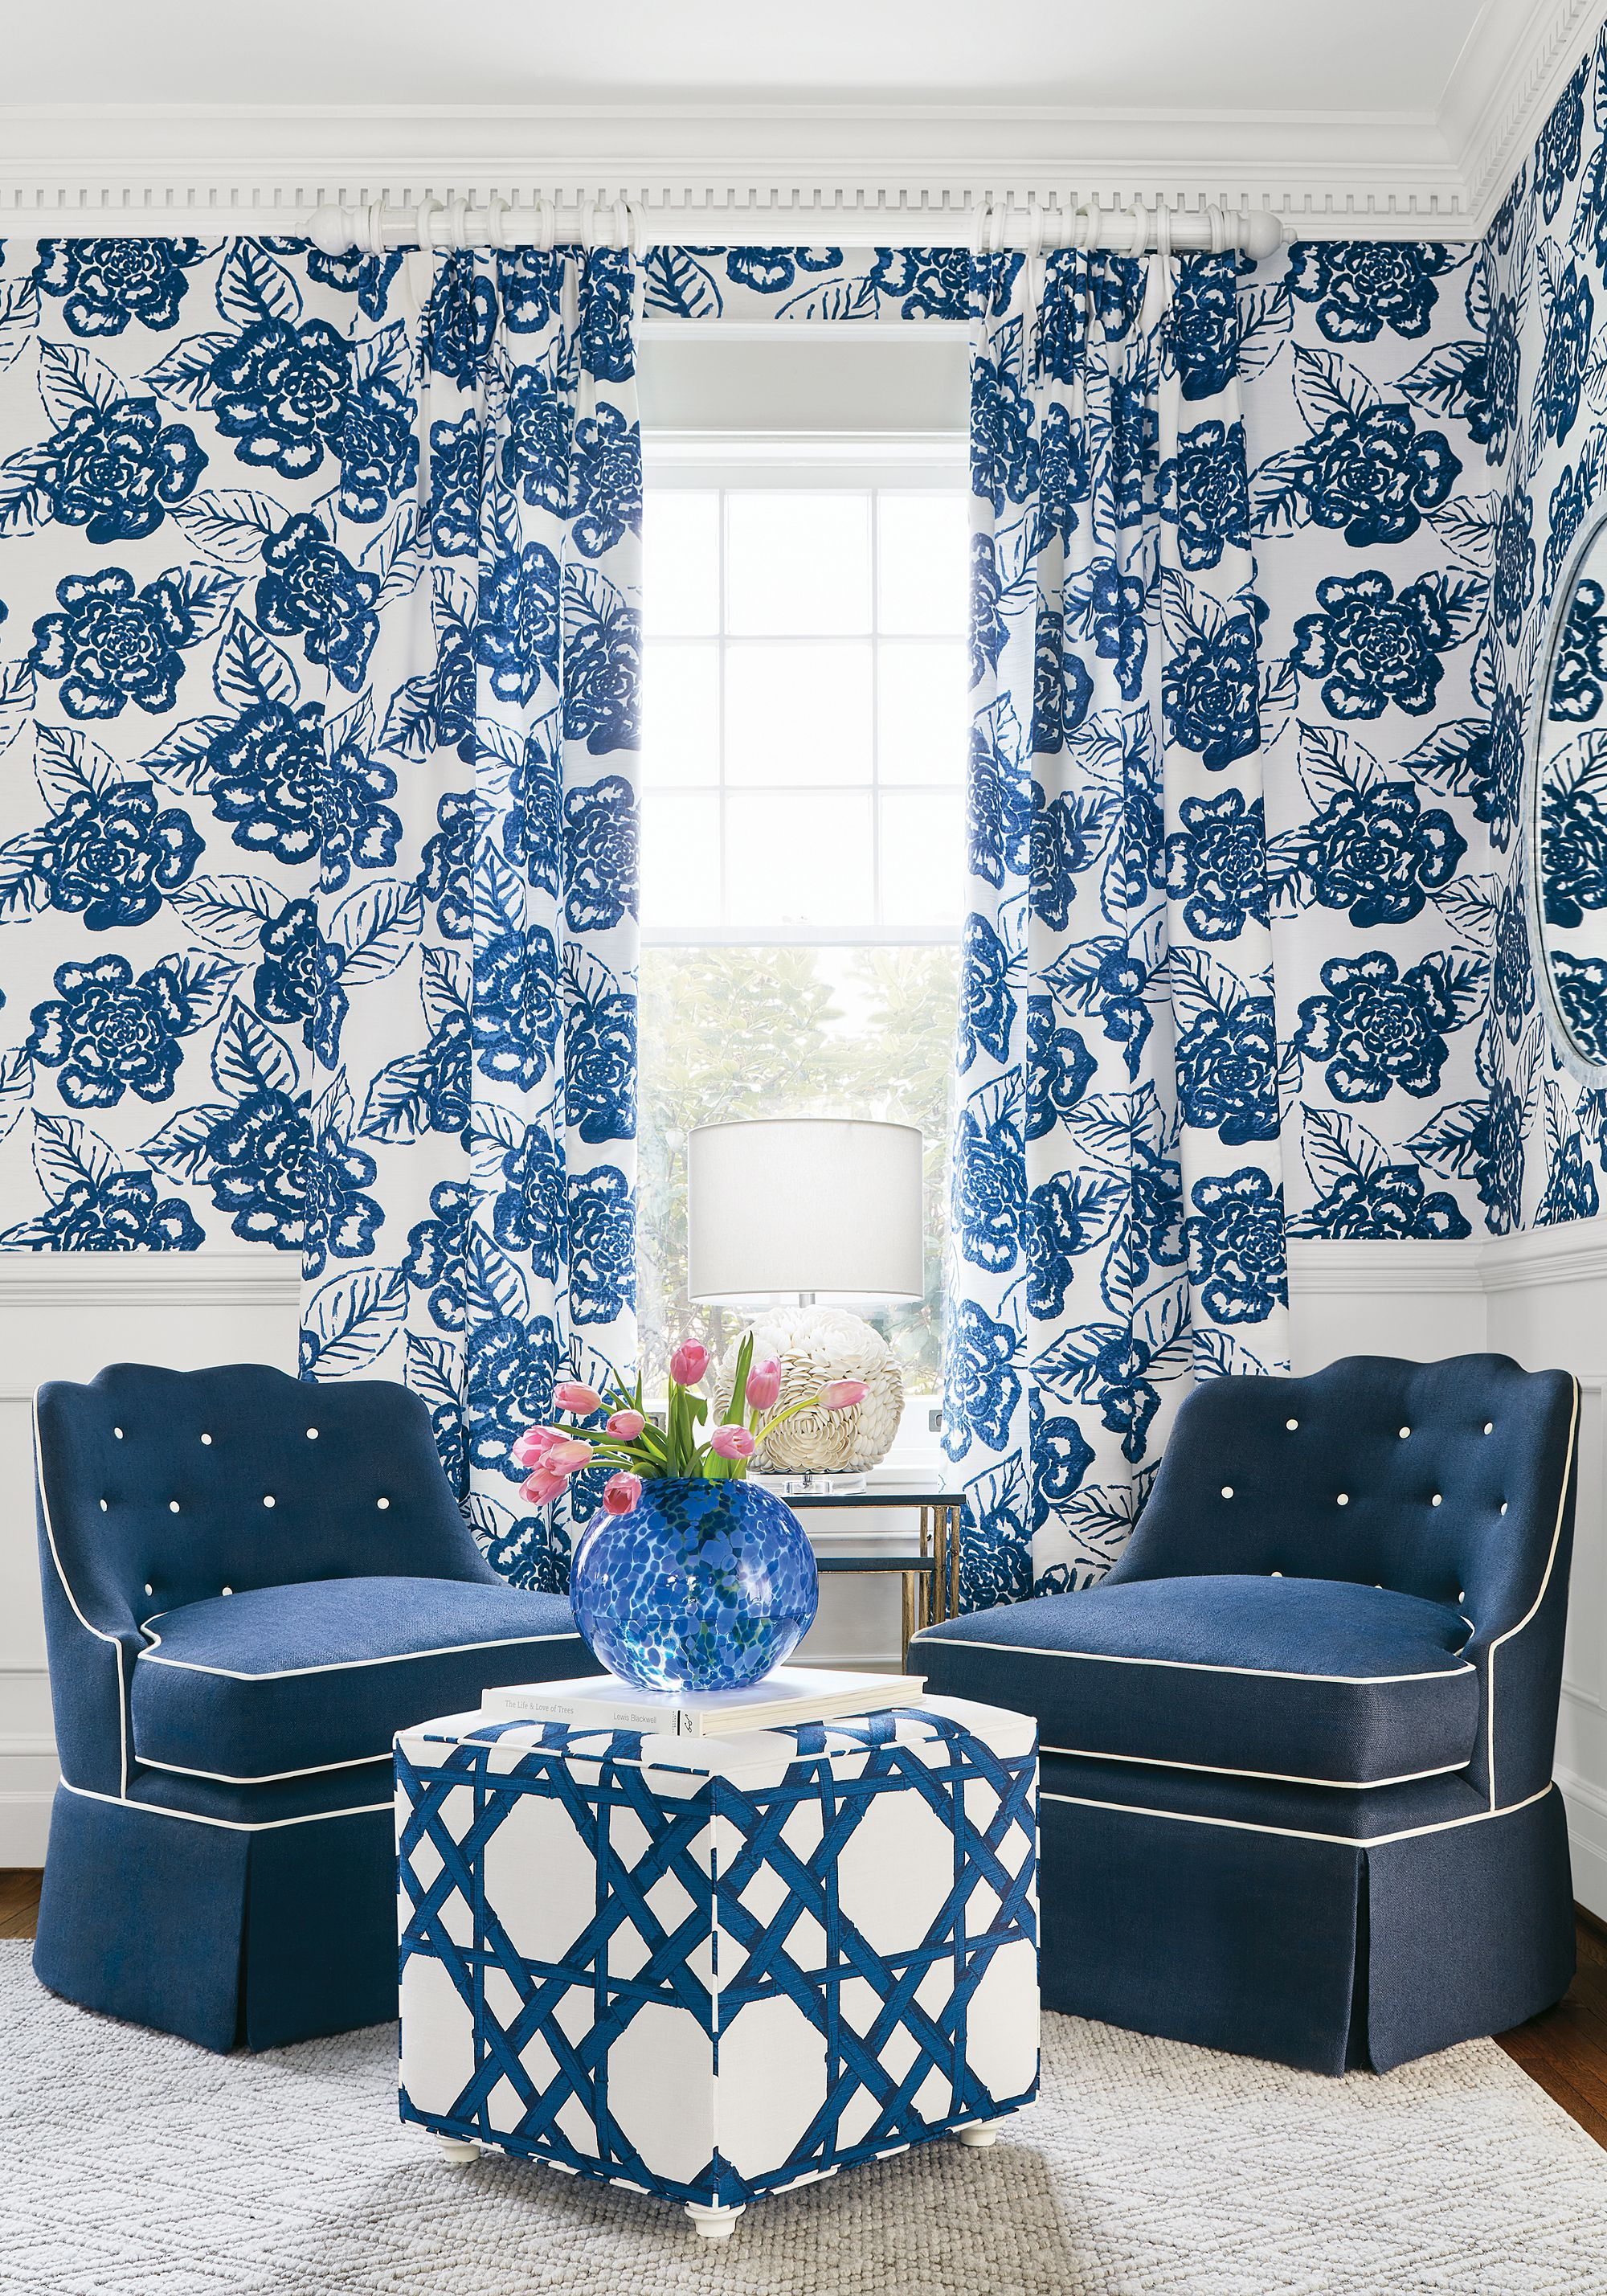 Awe Inspiring Fair And Square Ottoman In Cyrus Cane Printed Fabric In Navy Alphanode Cool Chair Designs And Ideas Alphanodeonline